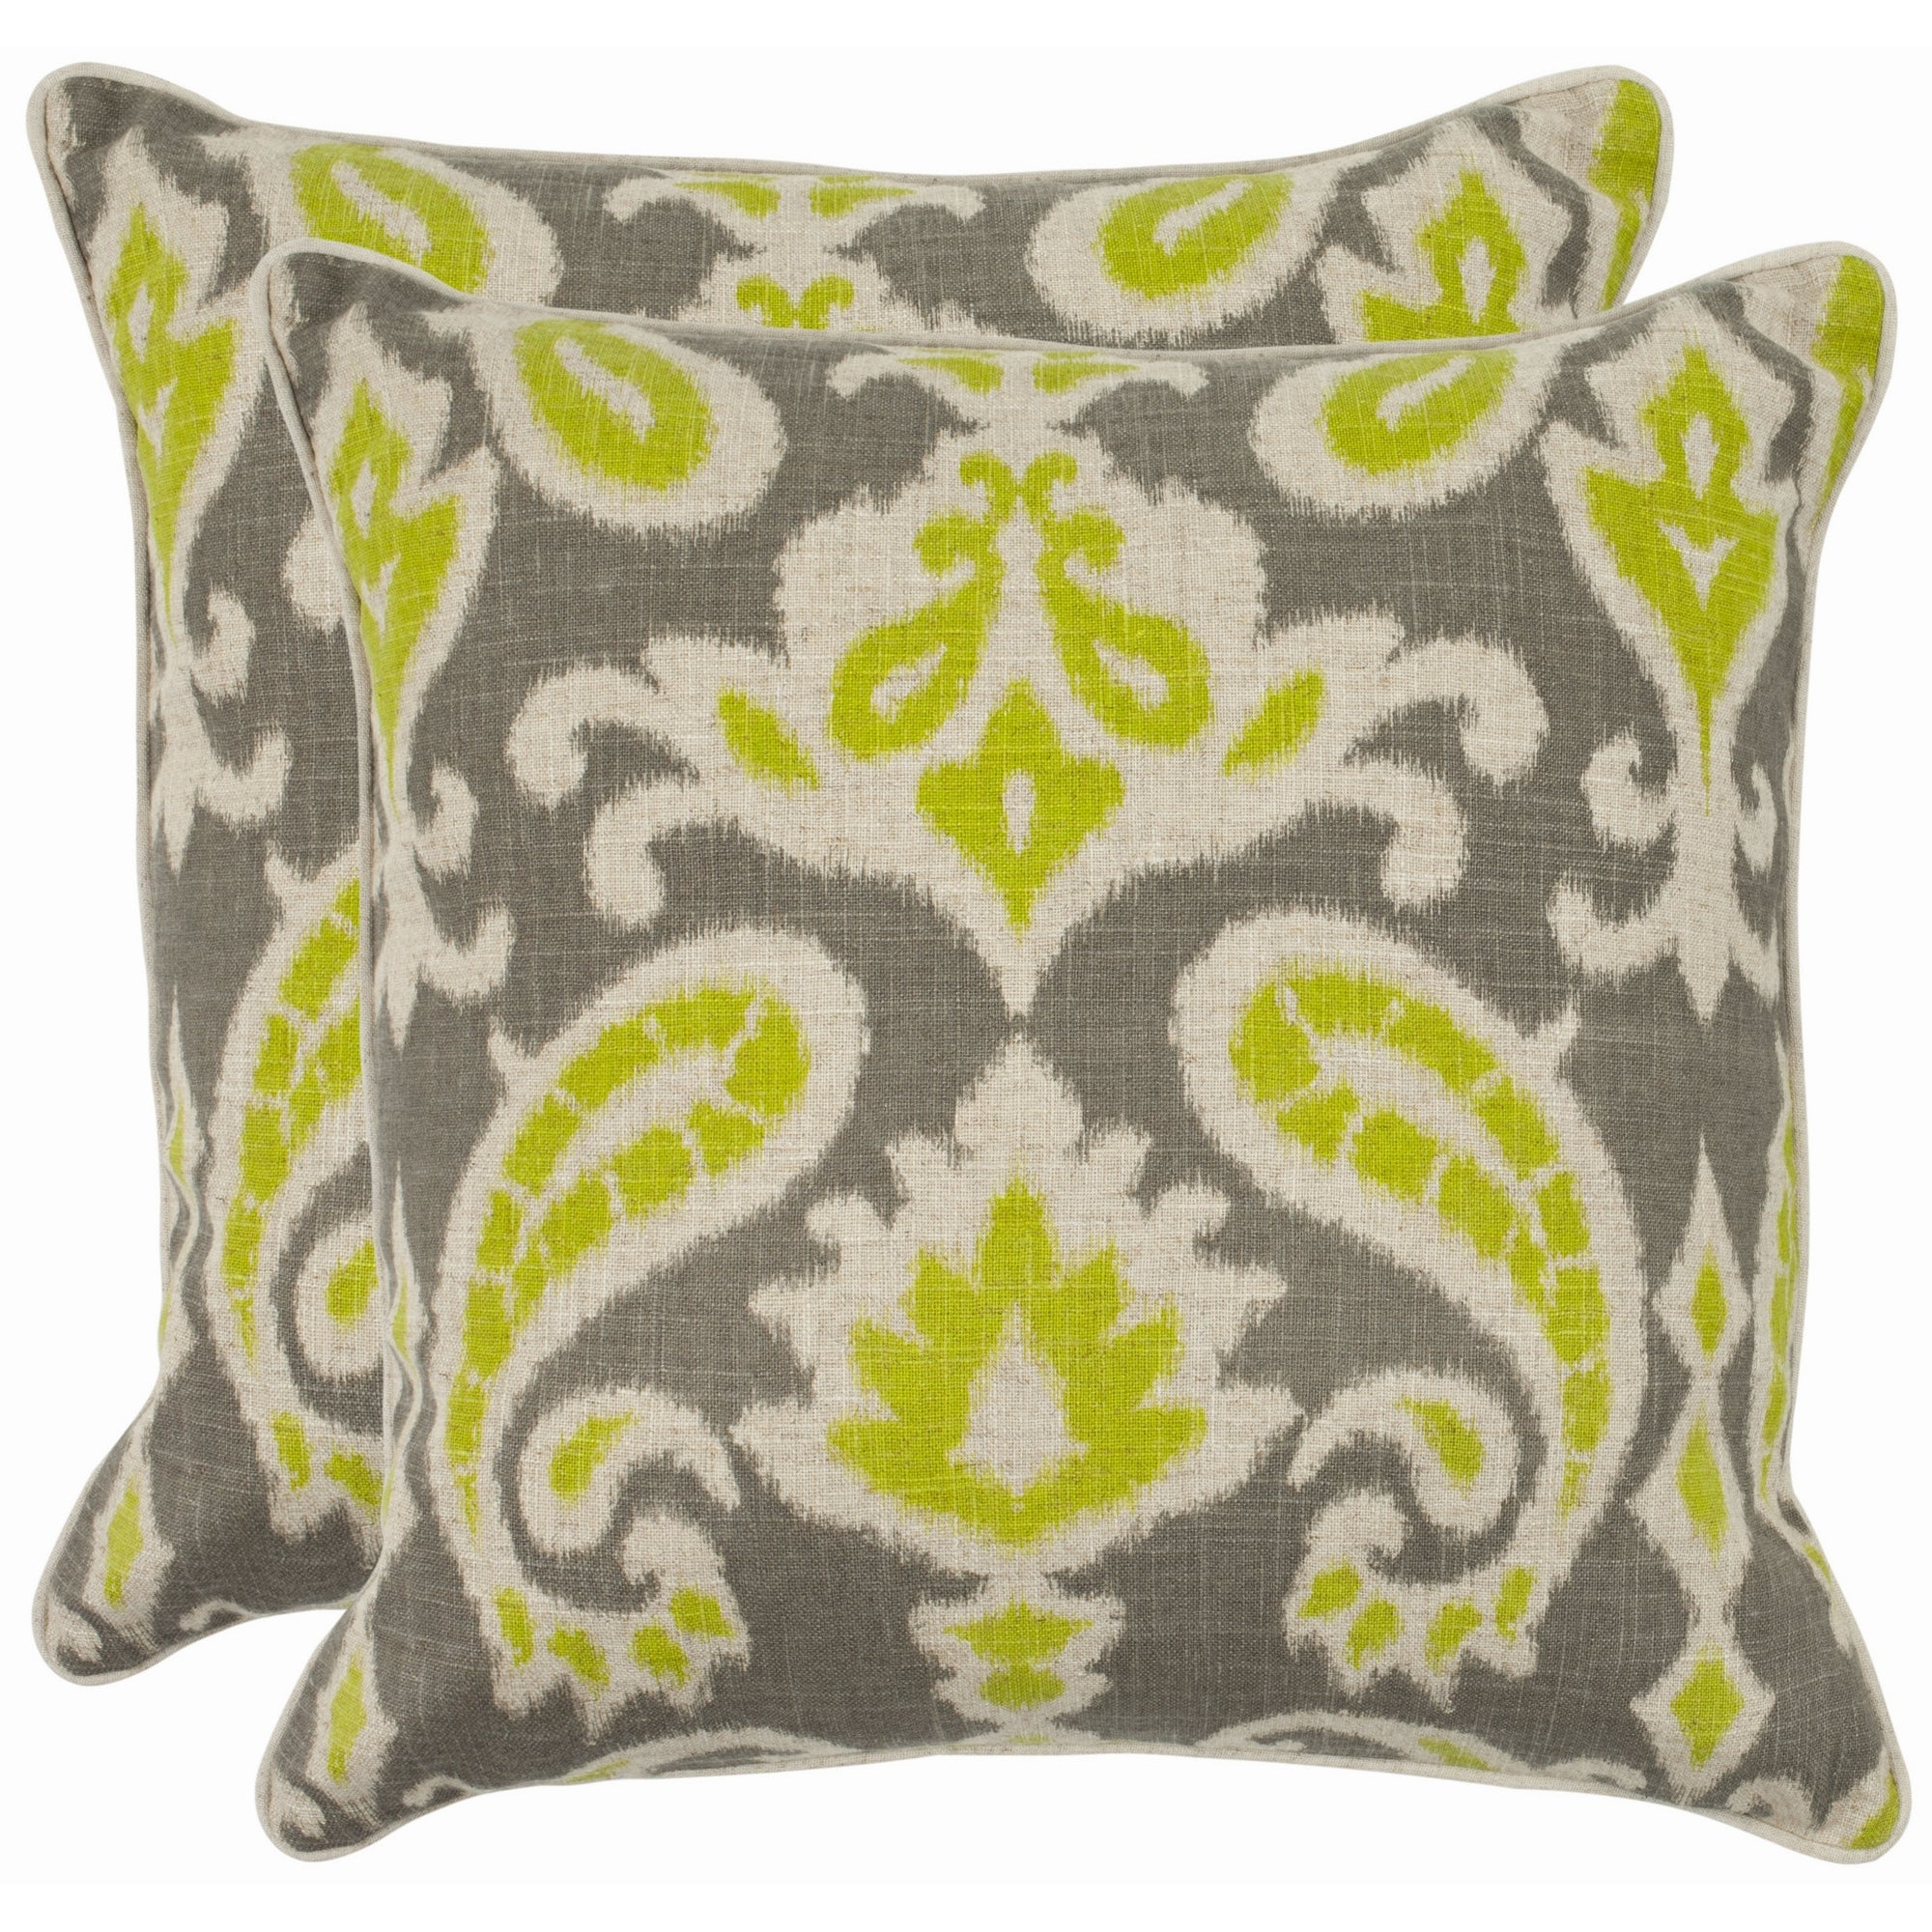 Buy Paisley Throw Pillows Online at Overstock.com | Our Best ...